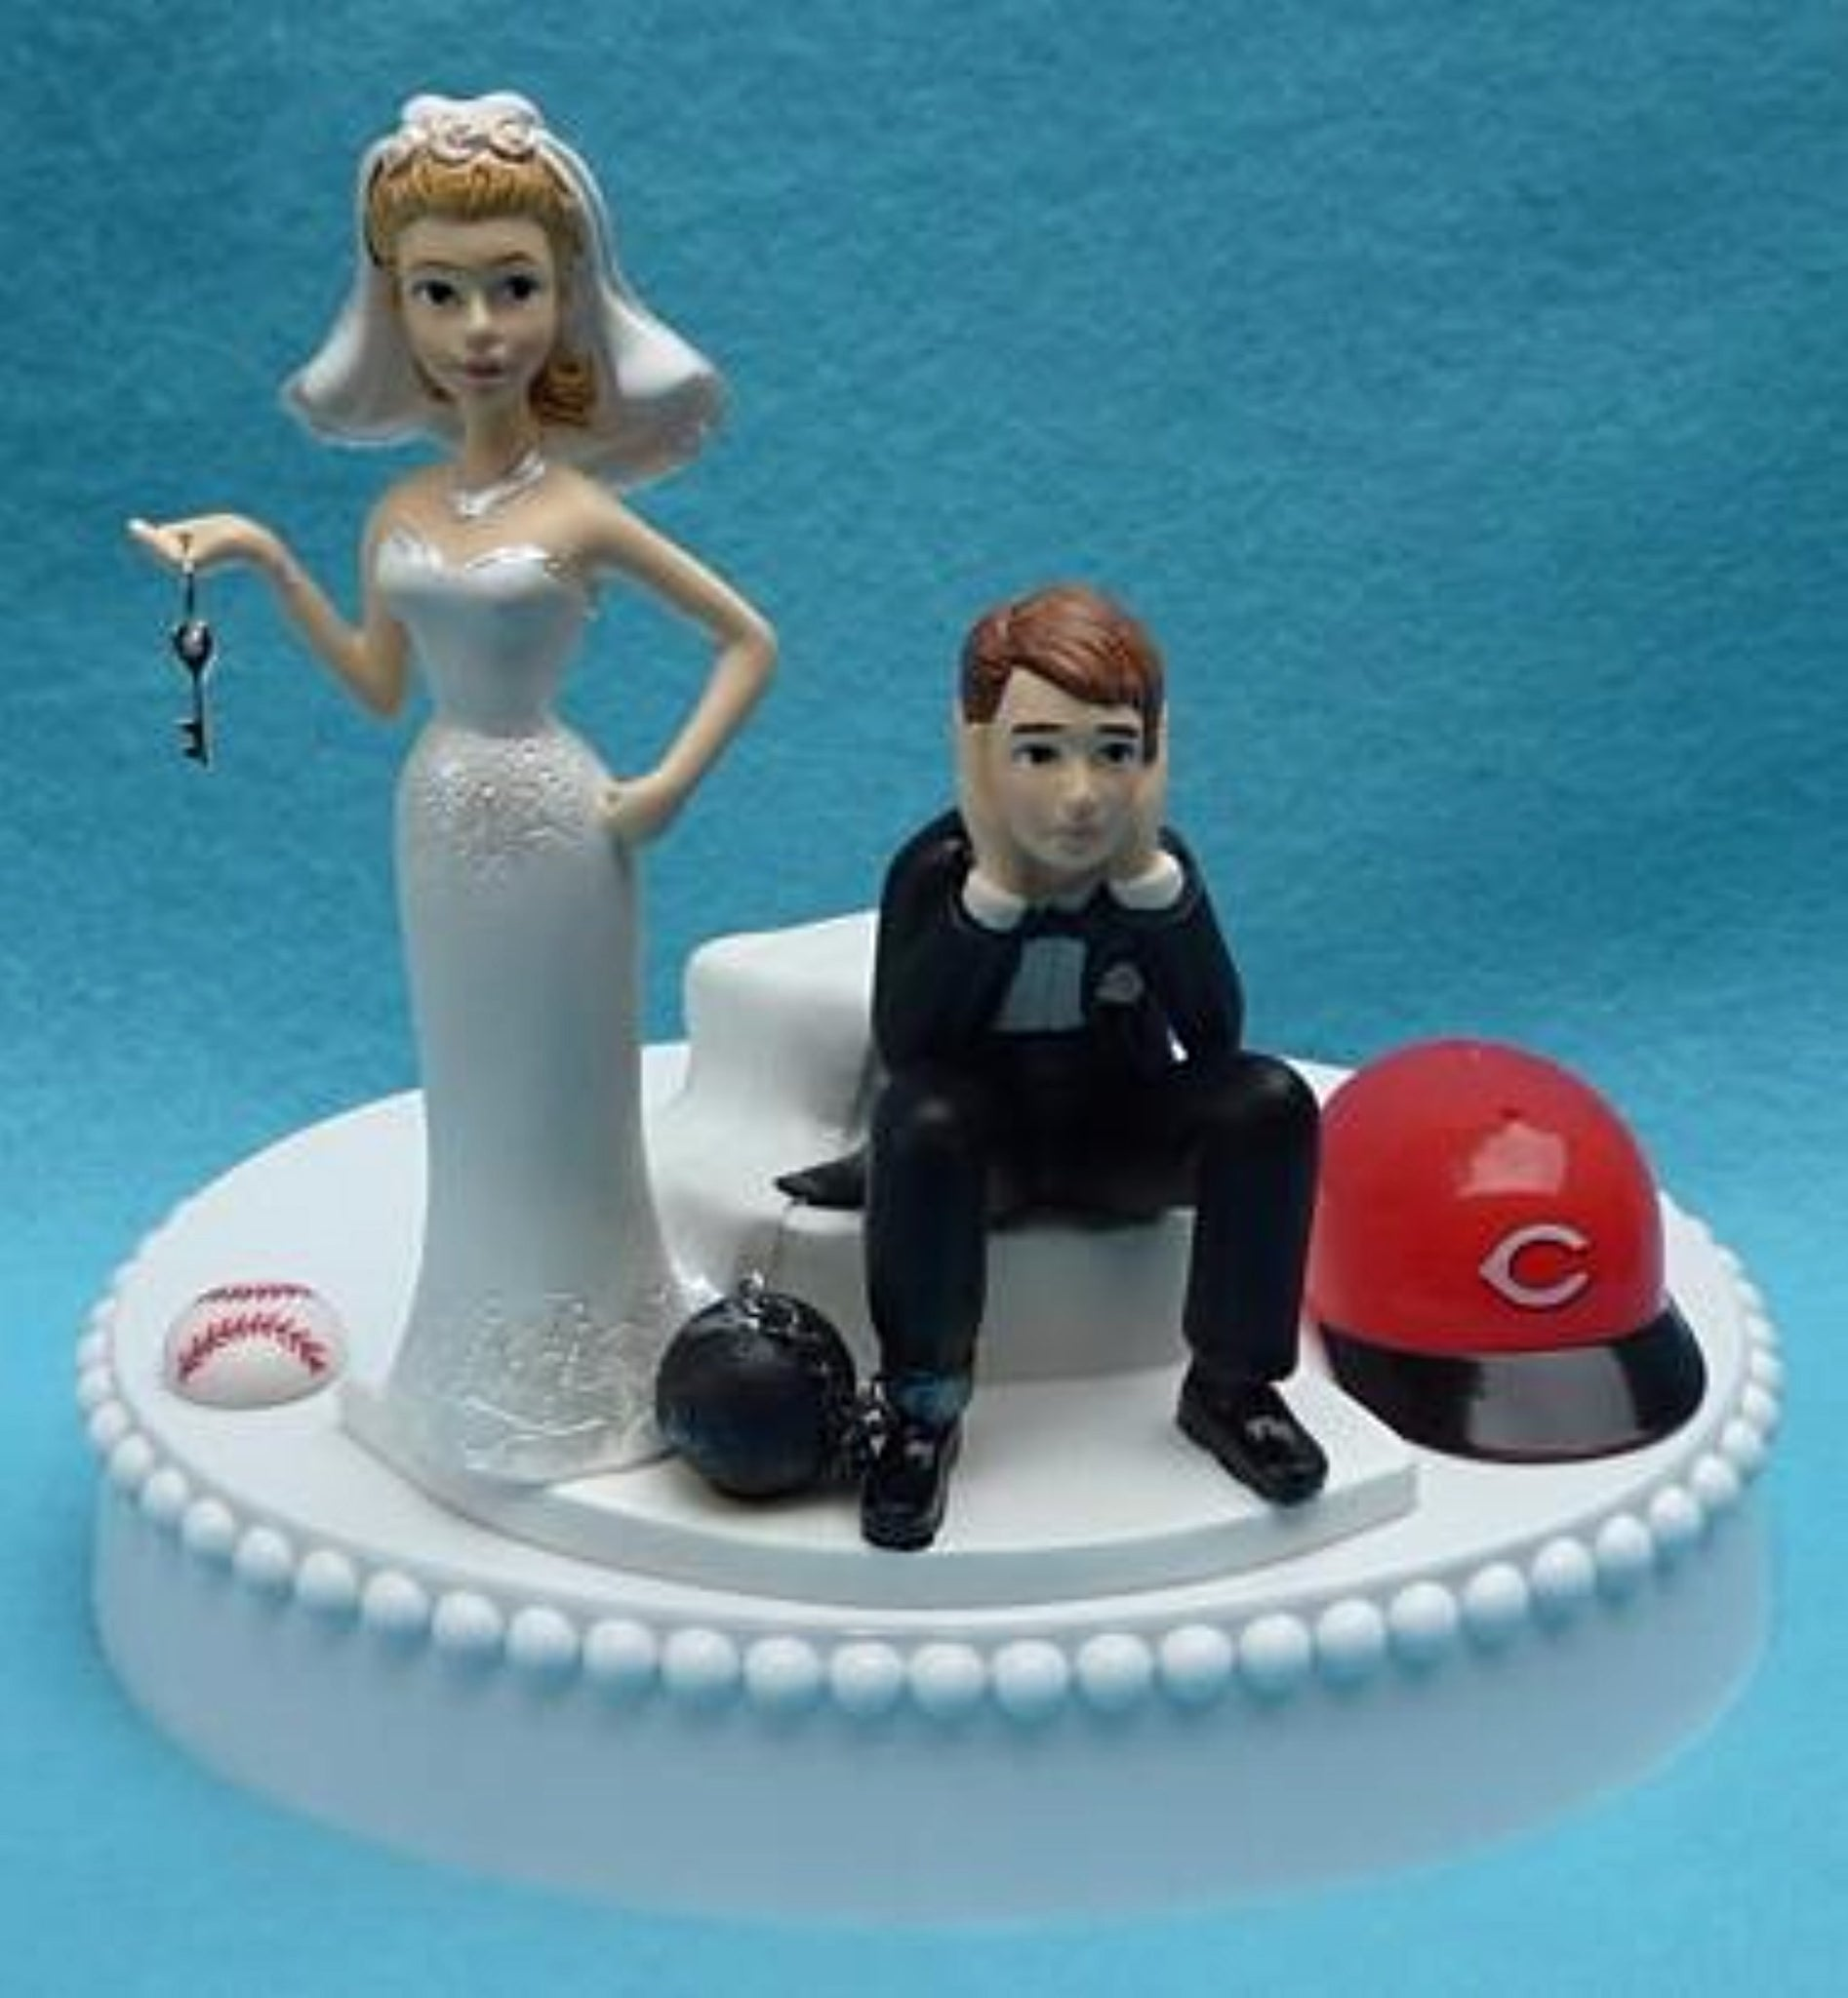 Wedding Cake Topper - Cincinnati Reds Baseball Themed Key